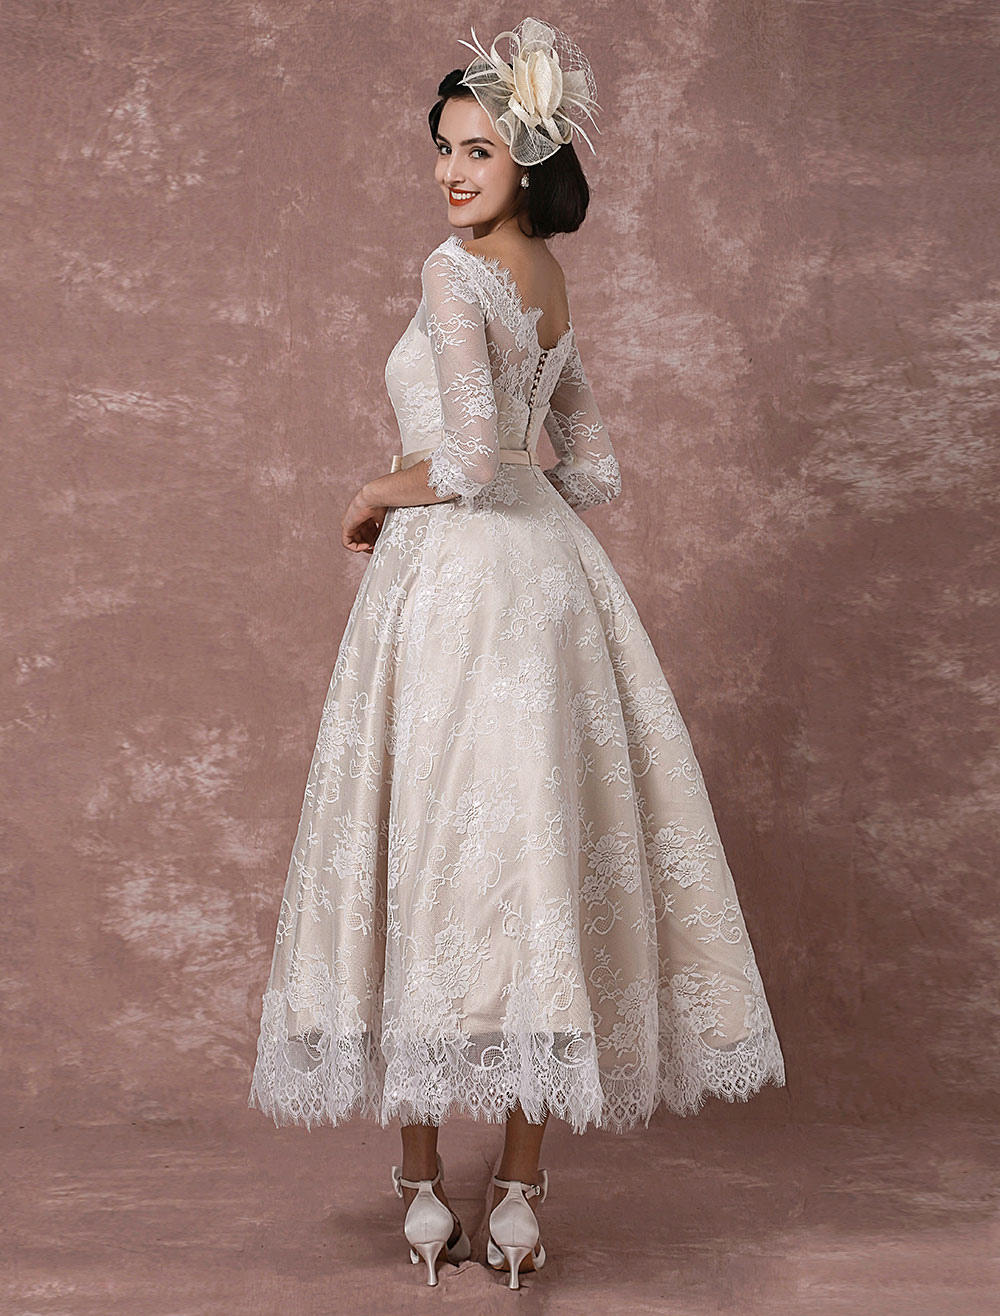 Vintage Wedding Dresses | Milanoo.com